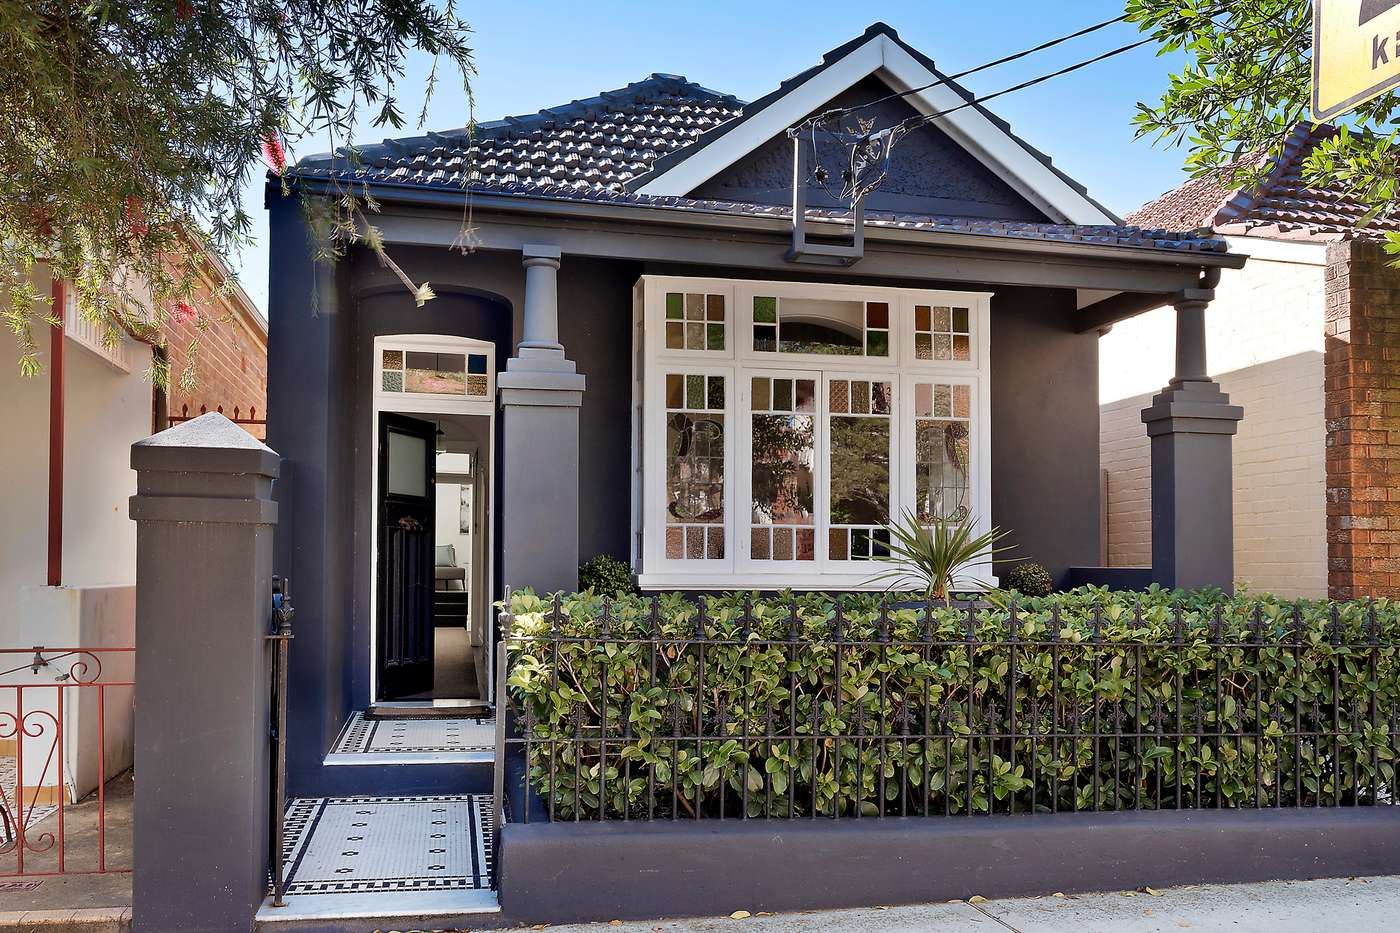 Main view of Homely house listing, 154 Albany Road, Stanmore, NSW 2048